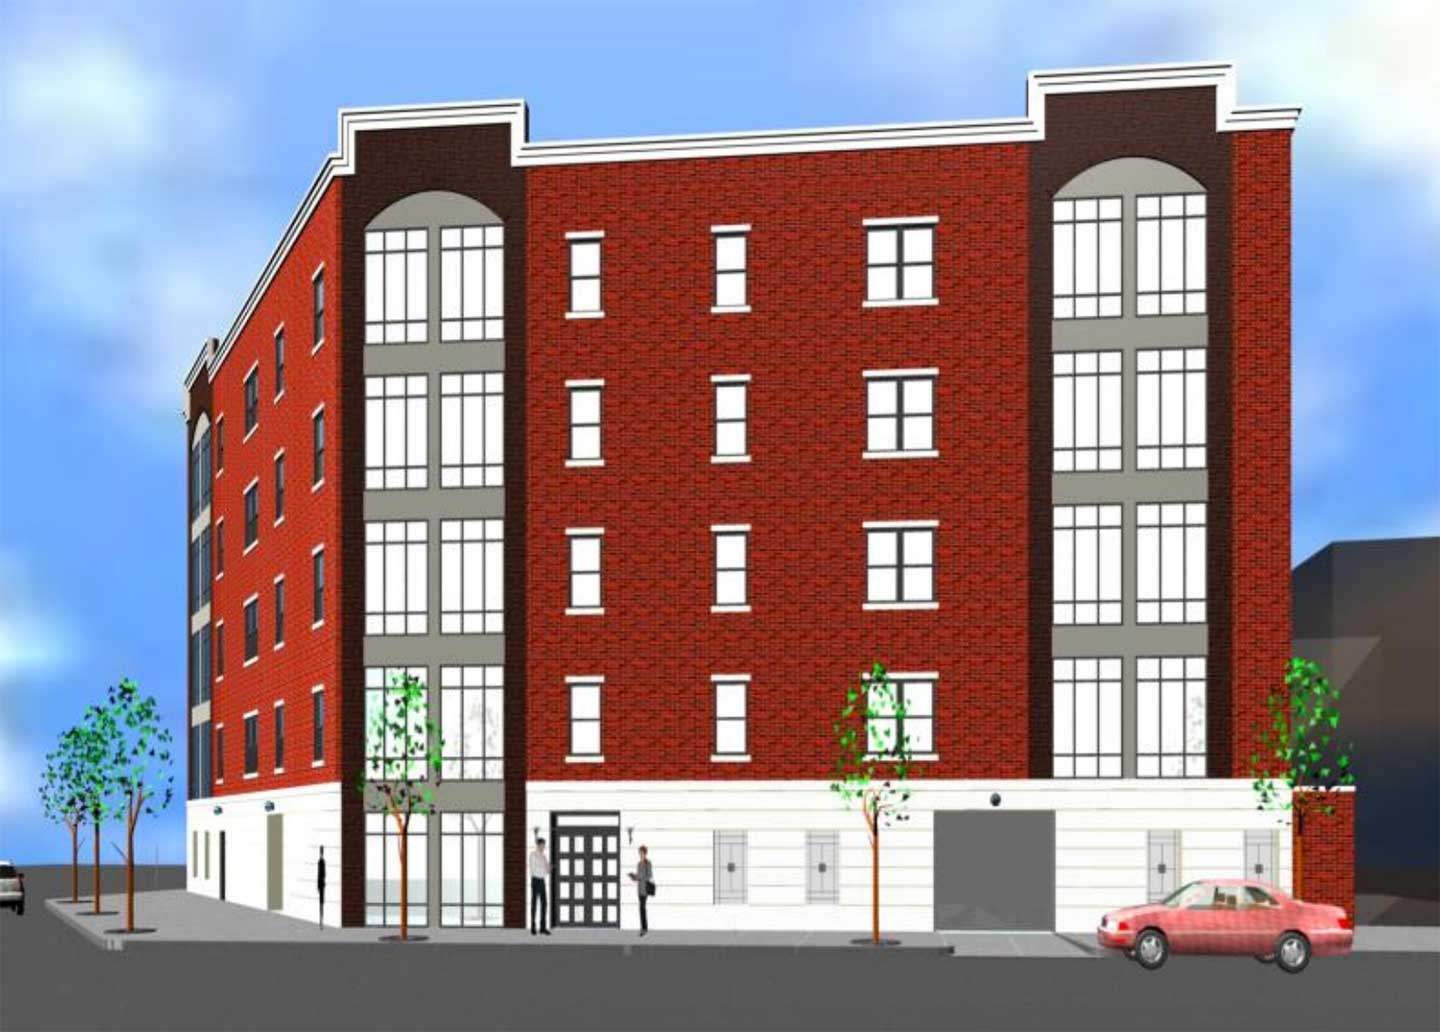 747 grand st 412 arlington ave jersey city development